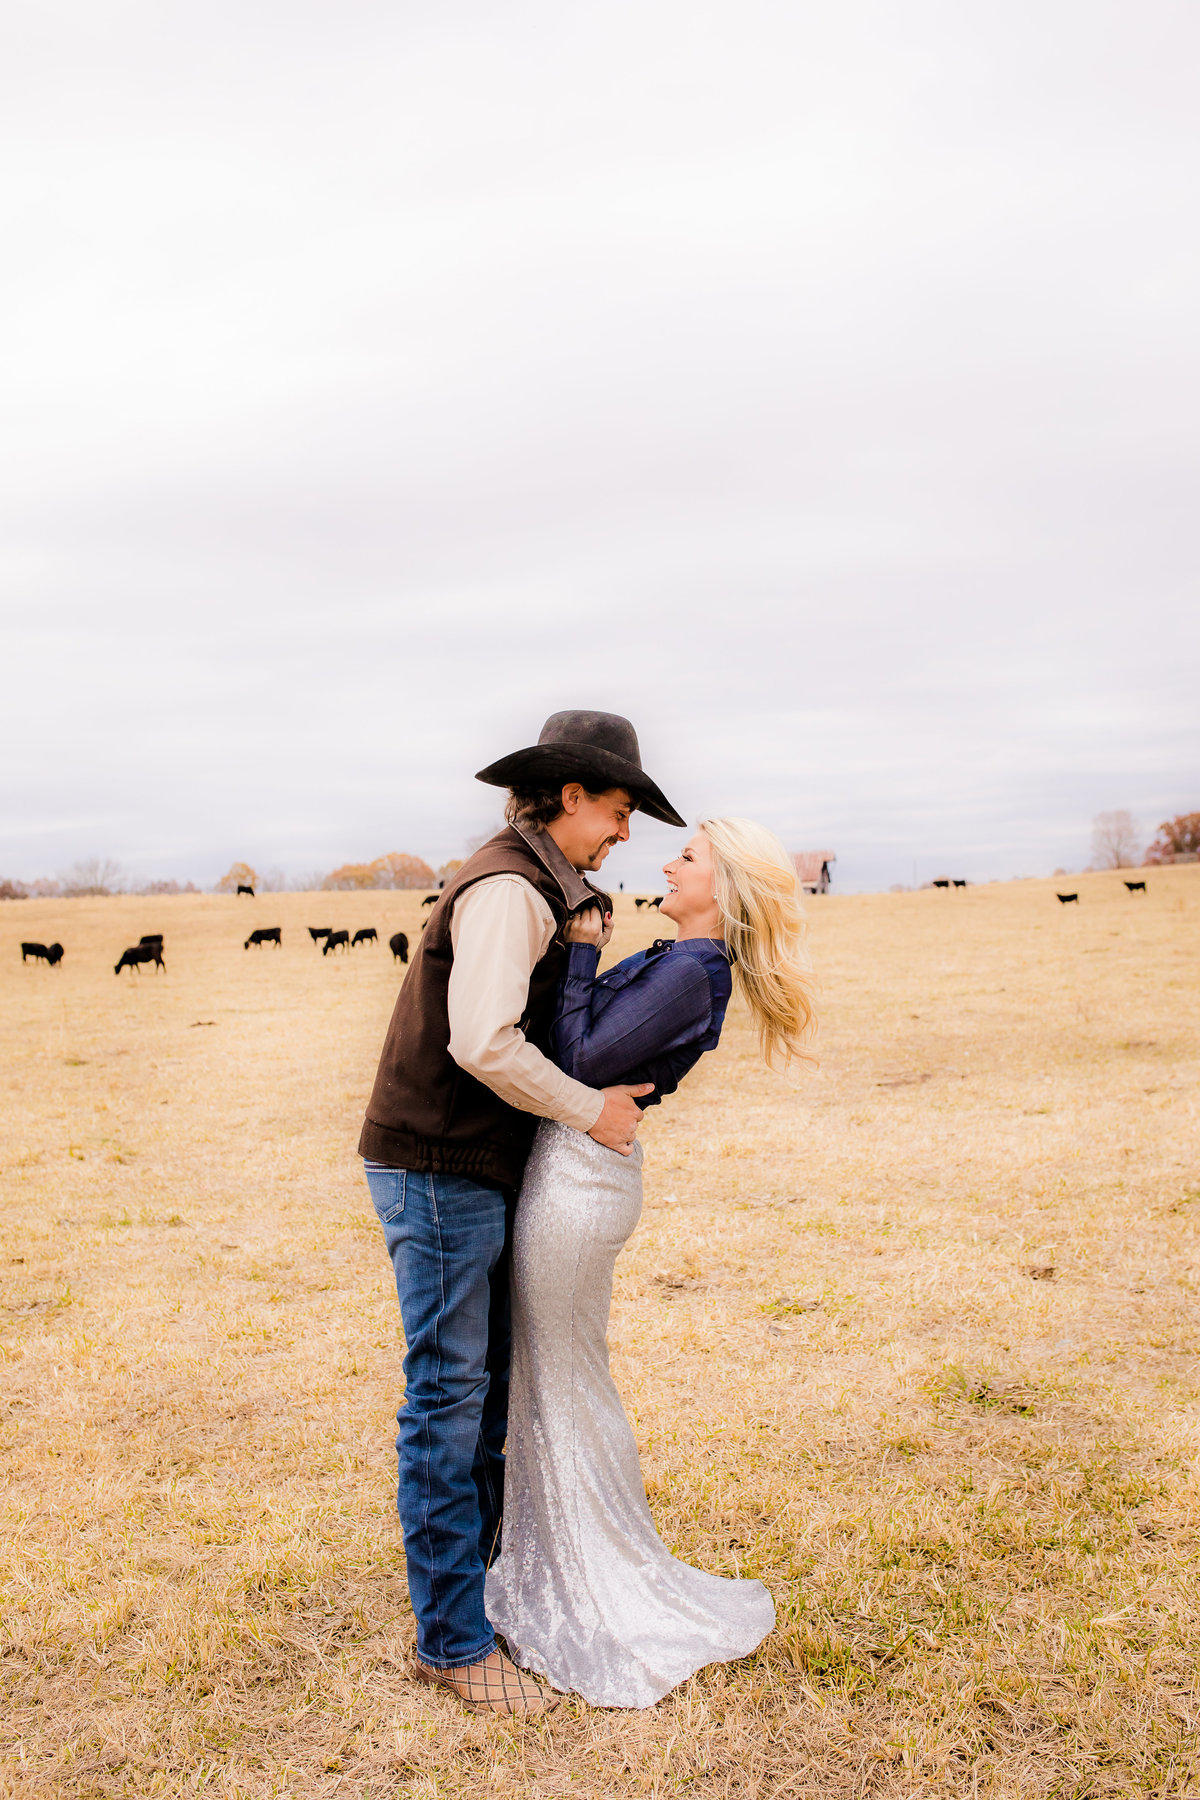 Cowboys Bride - Nashville Weddings - Nashville Wedding Photographer - Nashville Wedding Photographers - Engagement - Ranch Weddings - Ranch engagement Photos - Cowboys and Belles - Denim - Wedding Photographer003